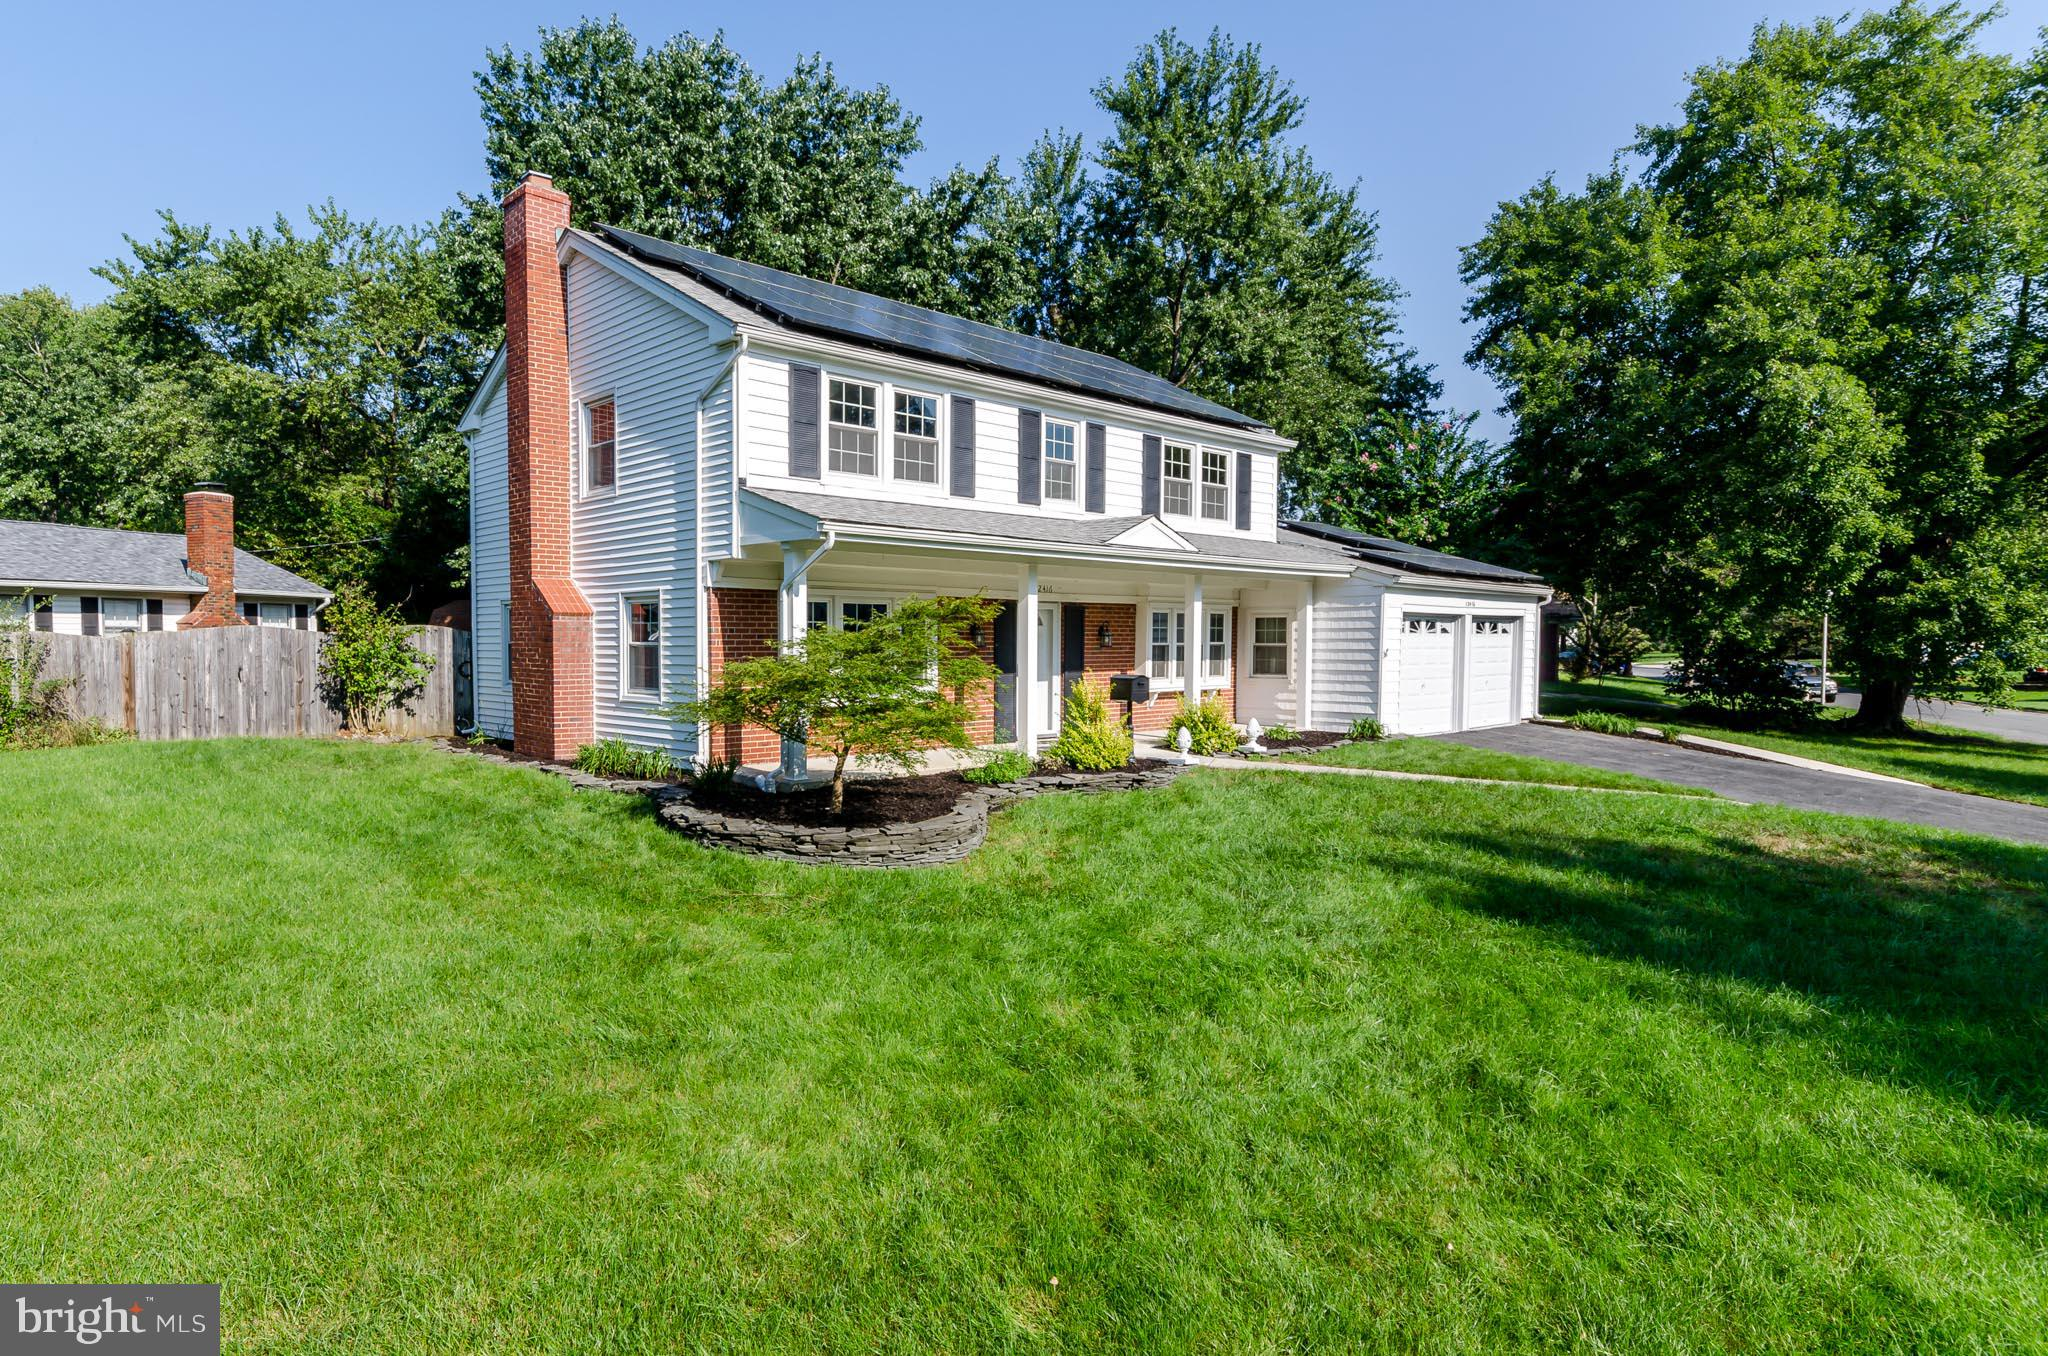 Just Listed 9/20! This STUNNING colonial in the heart of Bowie is a gem!  Boasting prestigious White